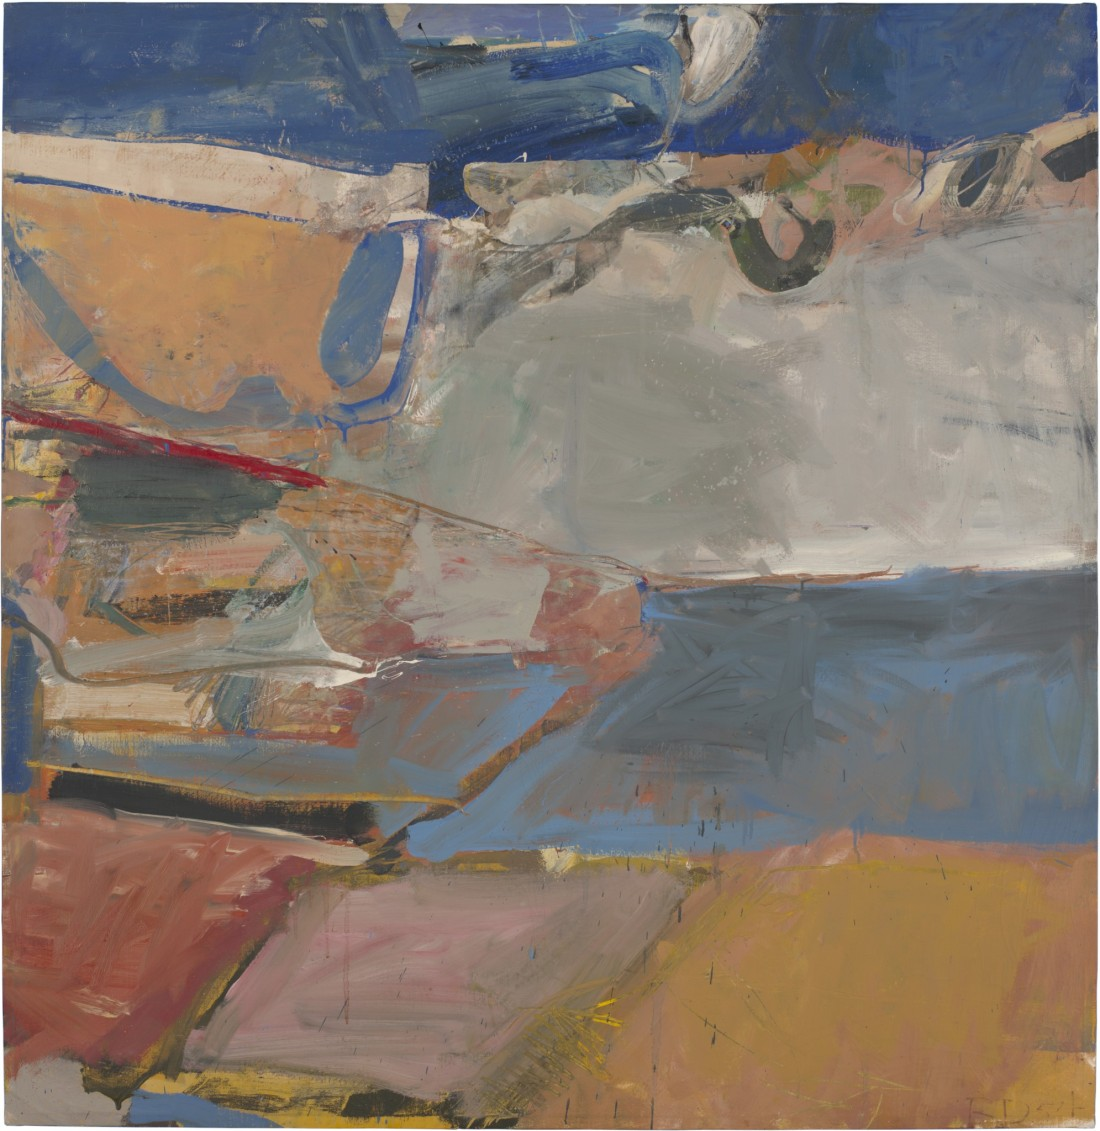 Richard Diebenkorn, Berkeley #22, 1954. Collection of the Hirshhorn Museum and Sculpture Garden, Washington.